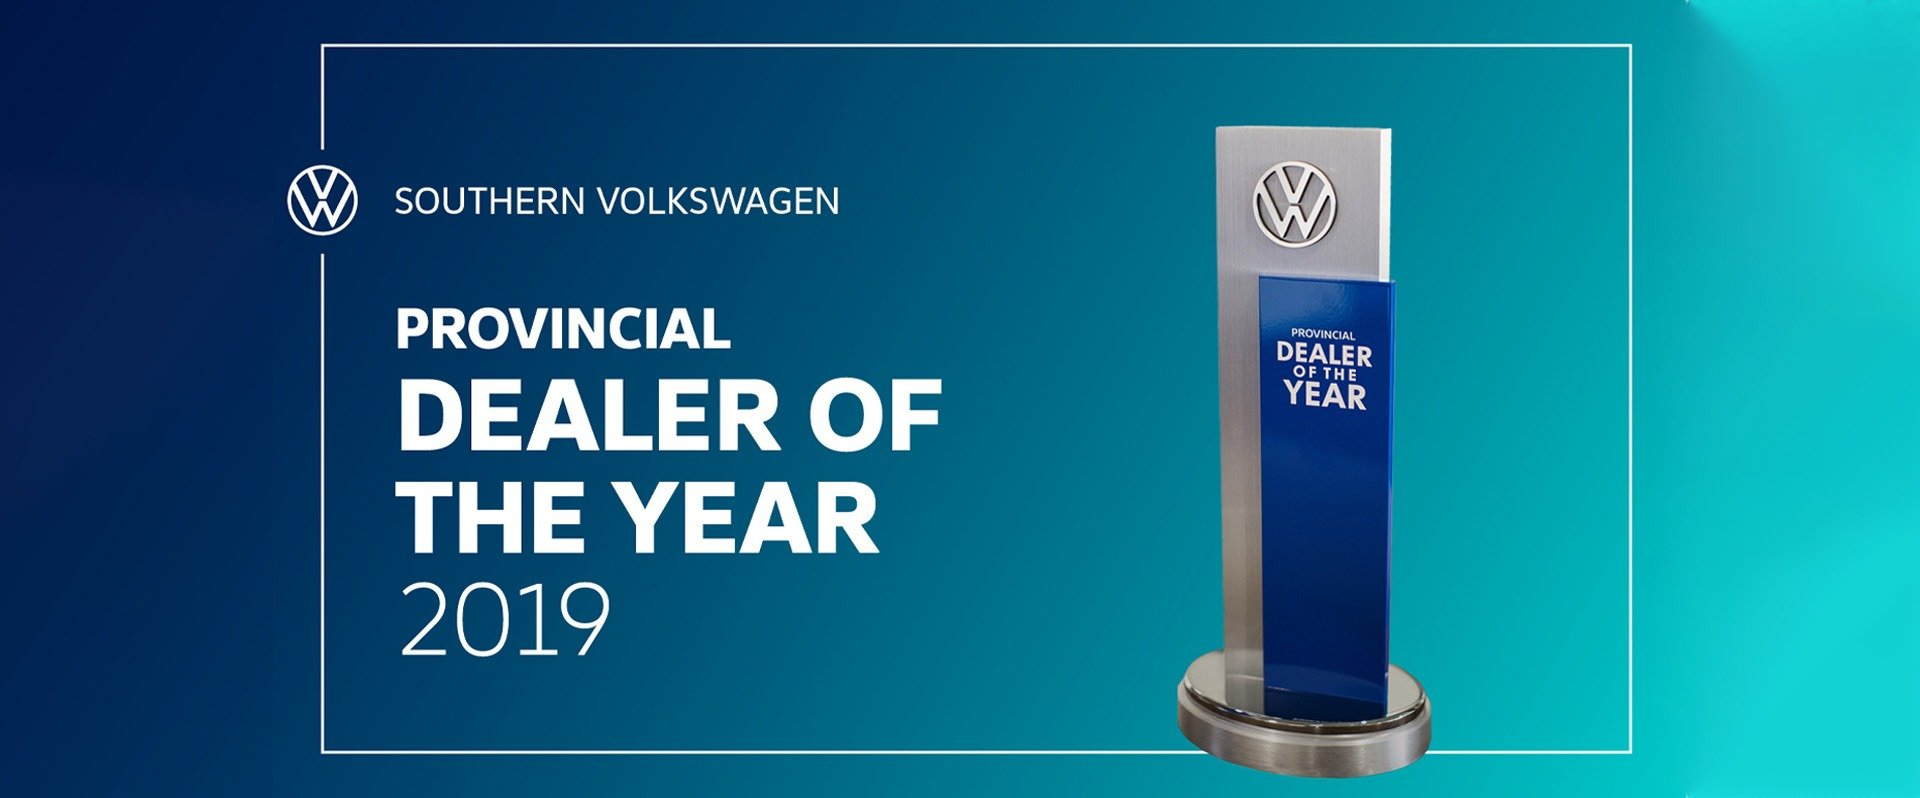 Southern VW - Dealer of the Year